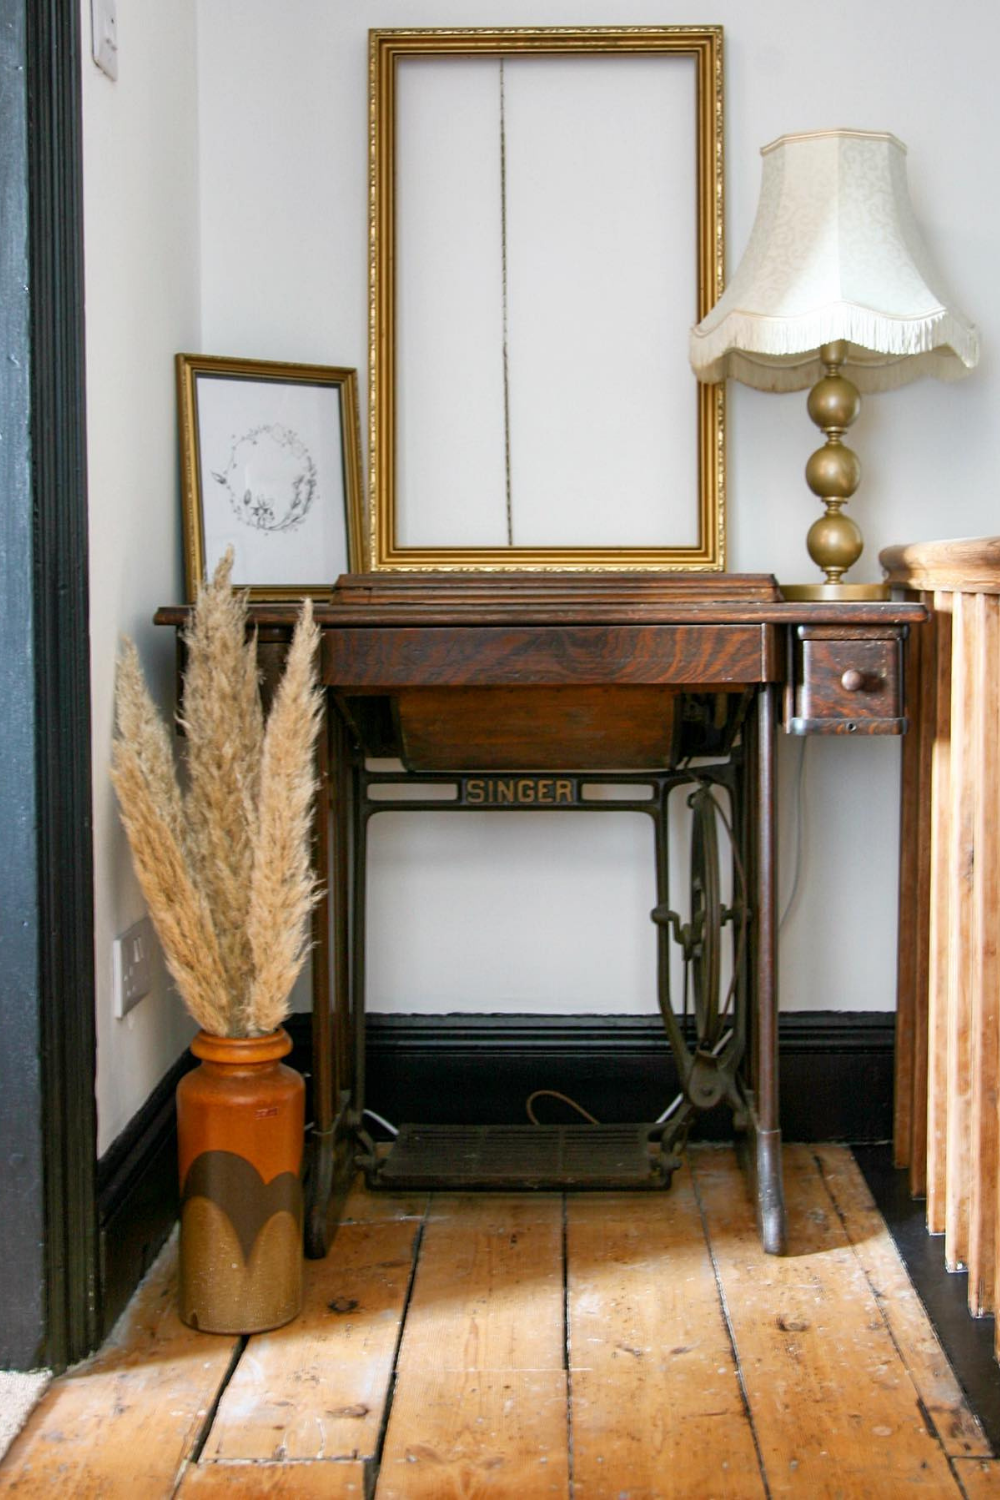 A singer sewing machine table with a gilt frame and lamp on top with a vase full of pampas grass in the foreground.